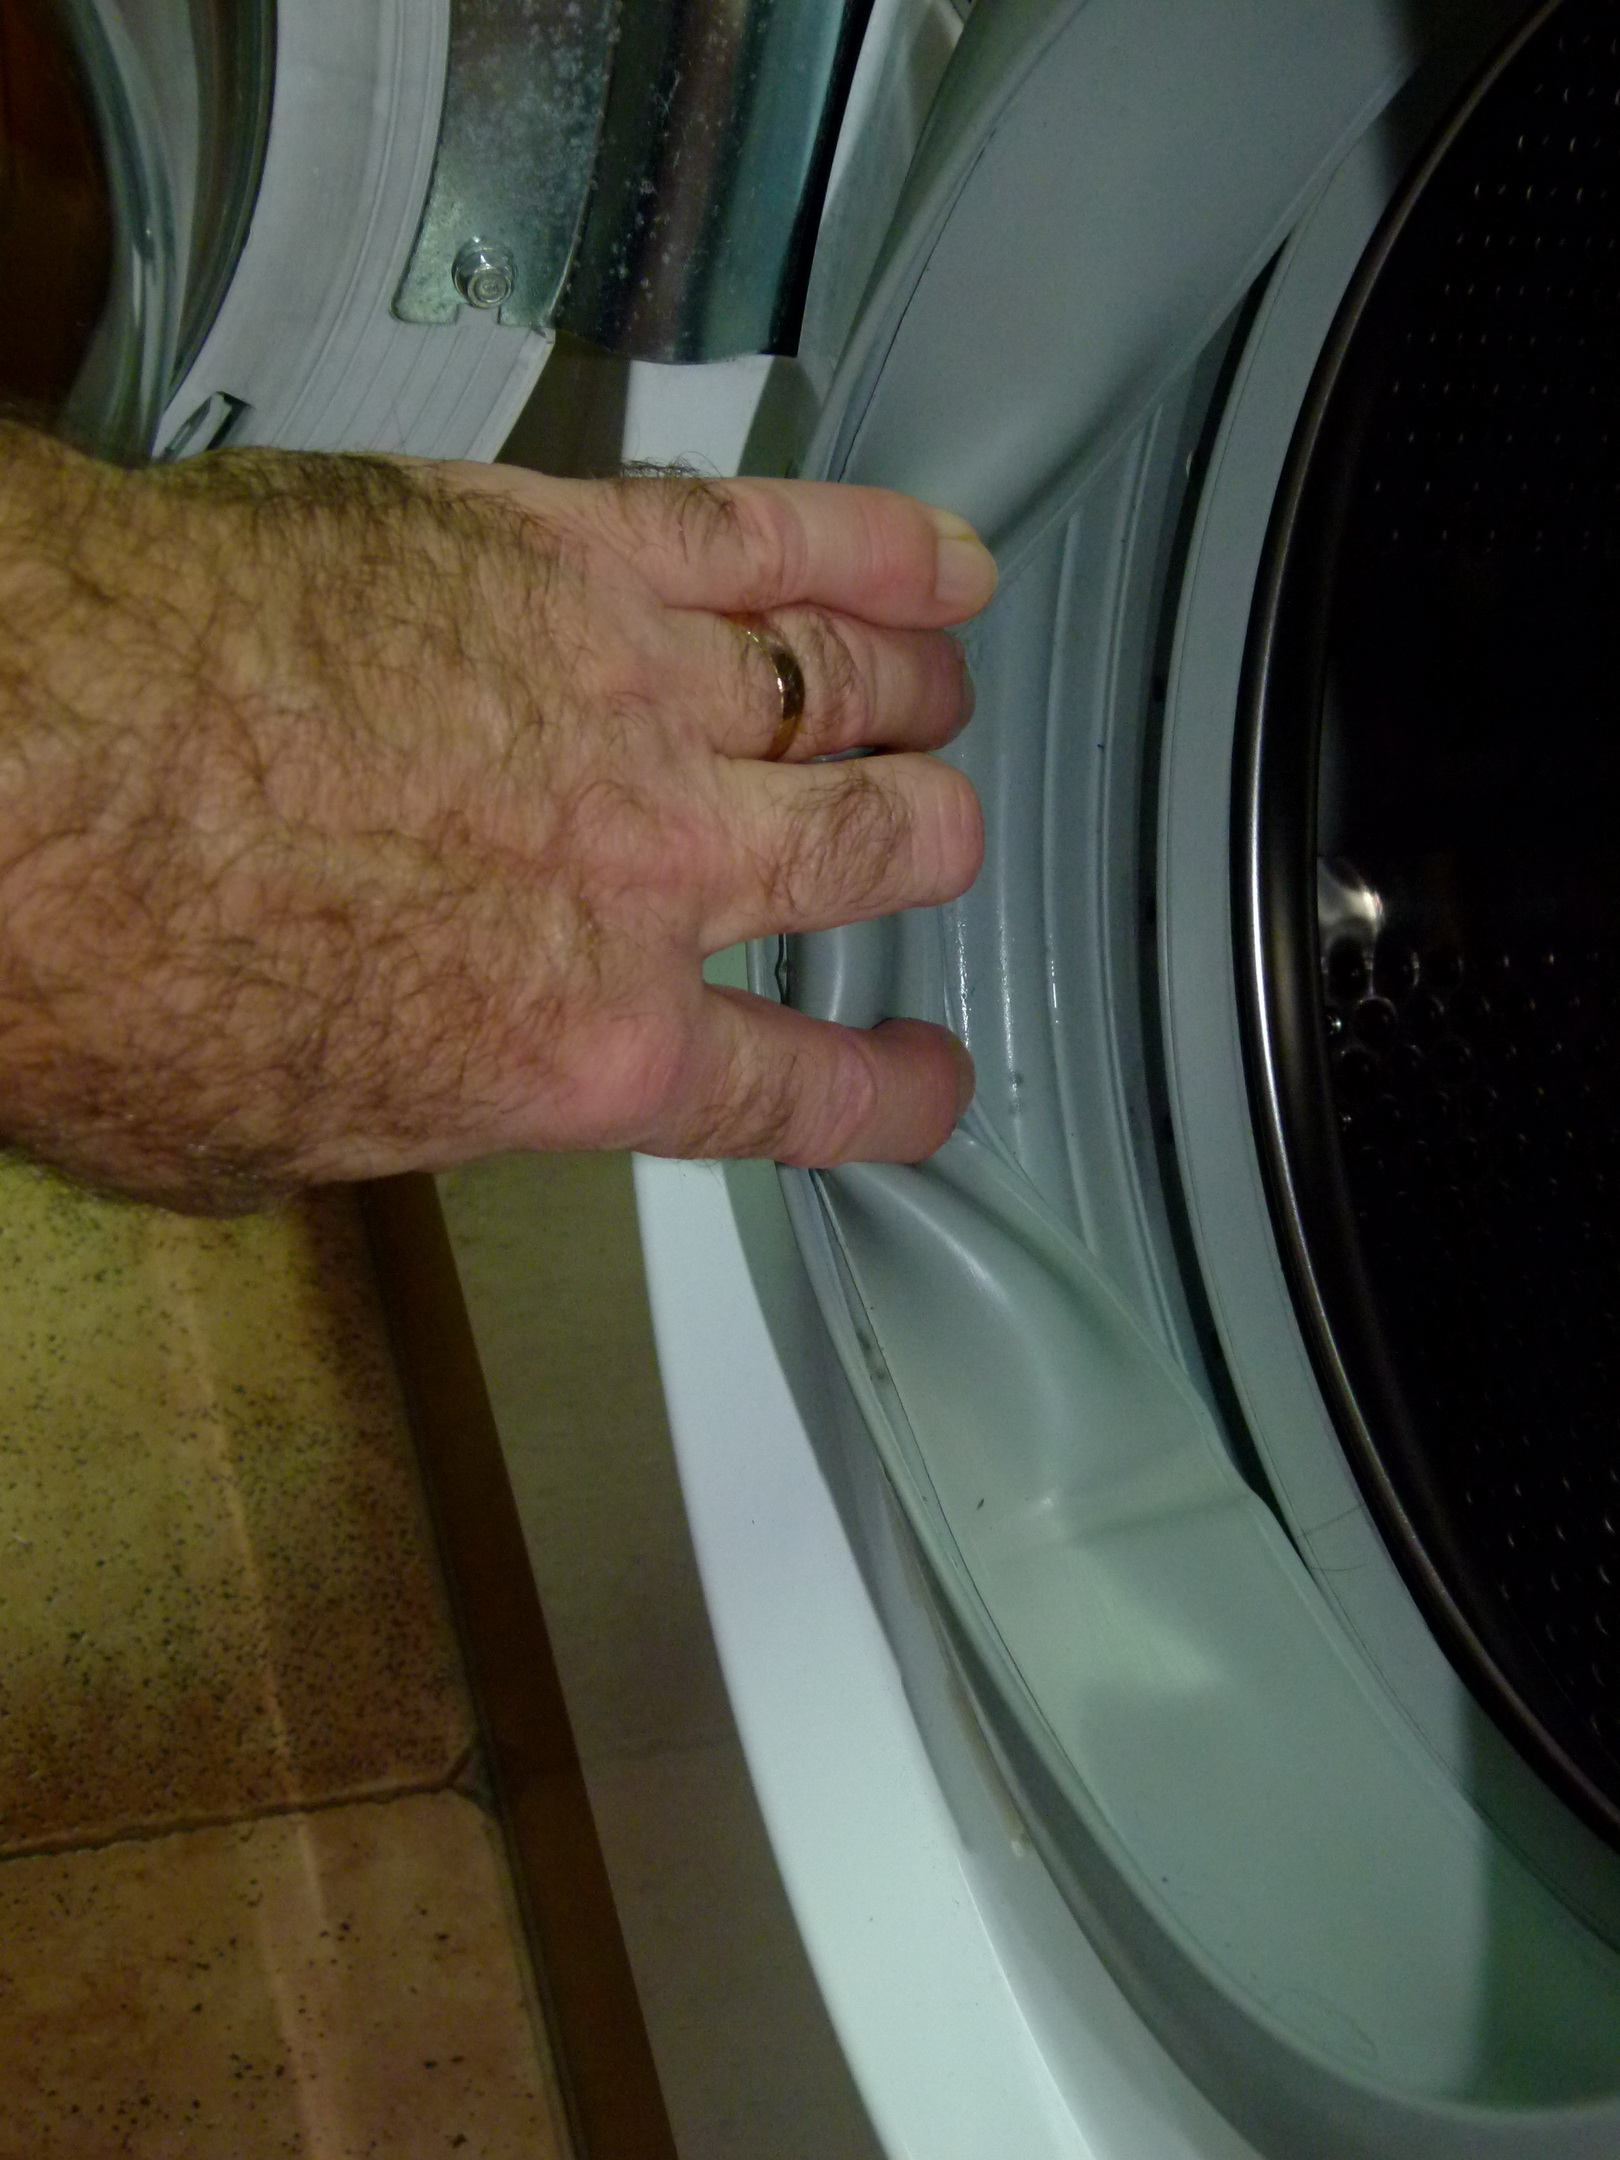 how to clean mold from washing machine drawer